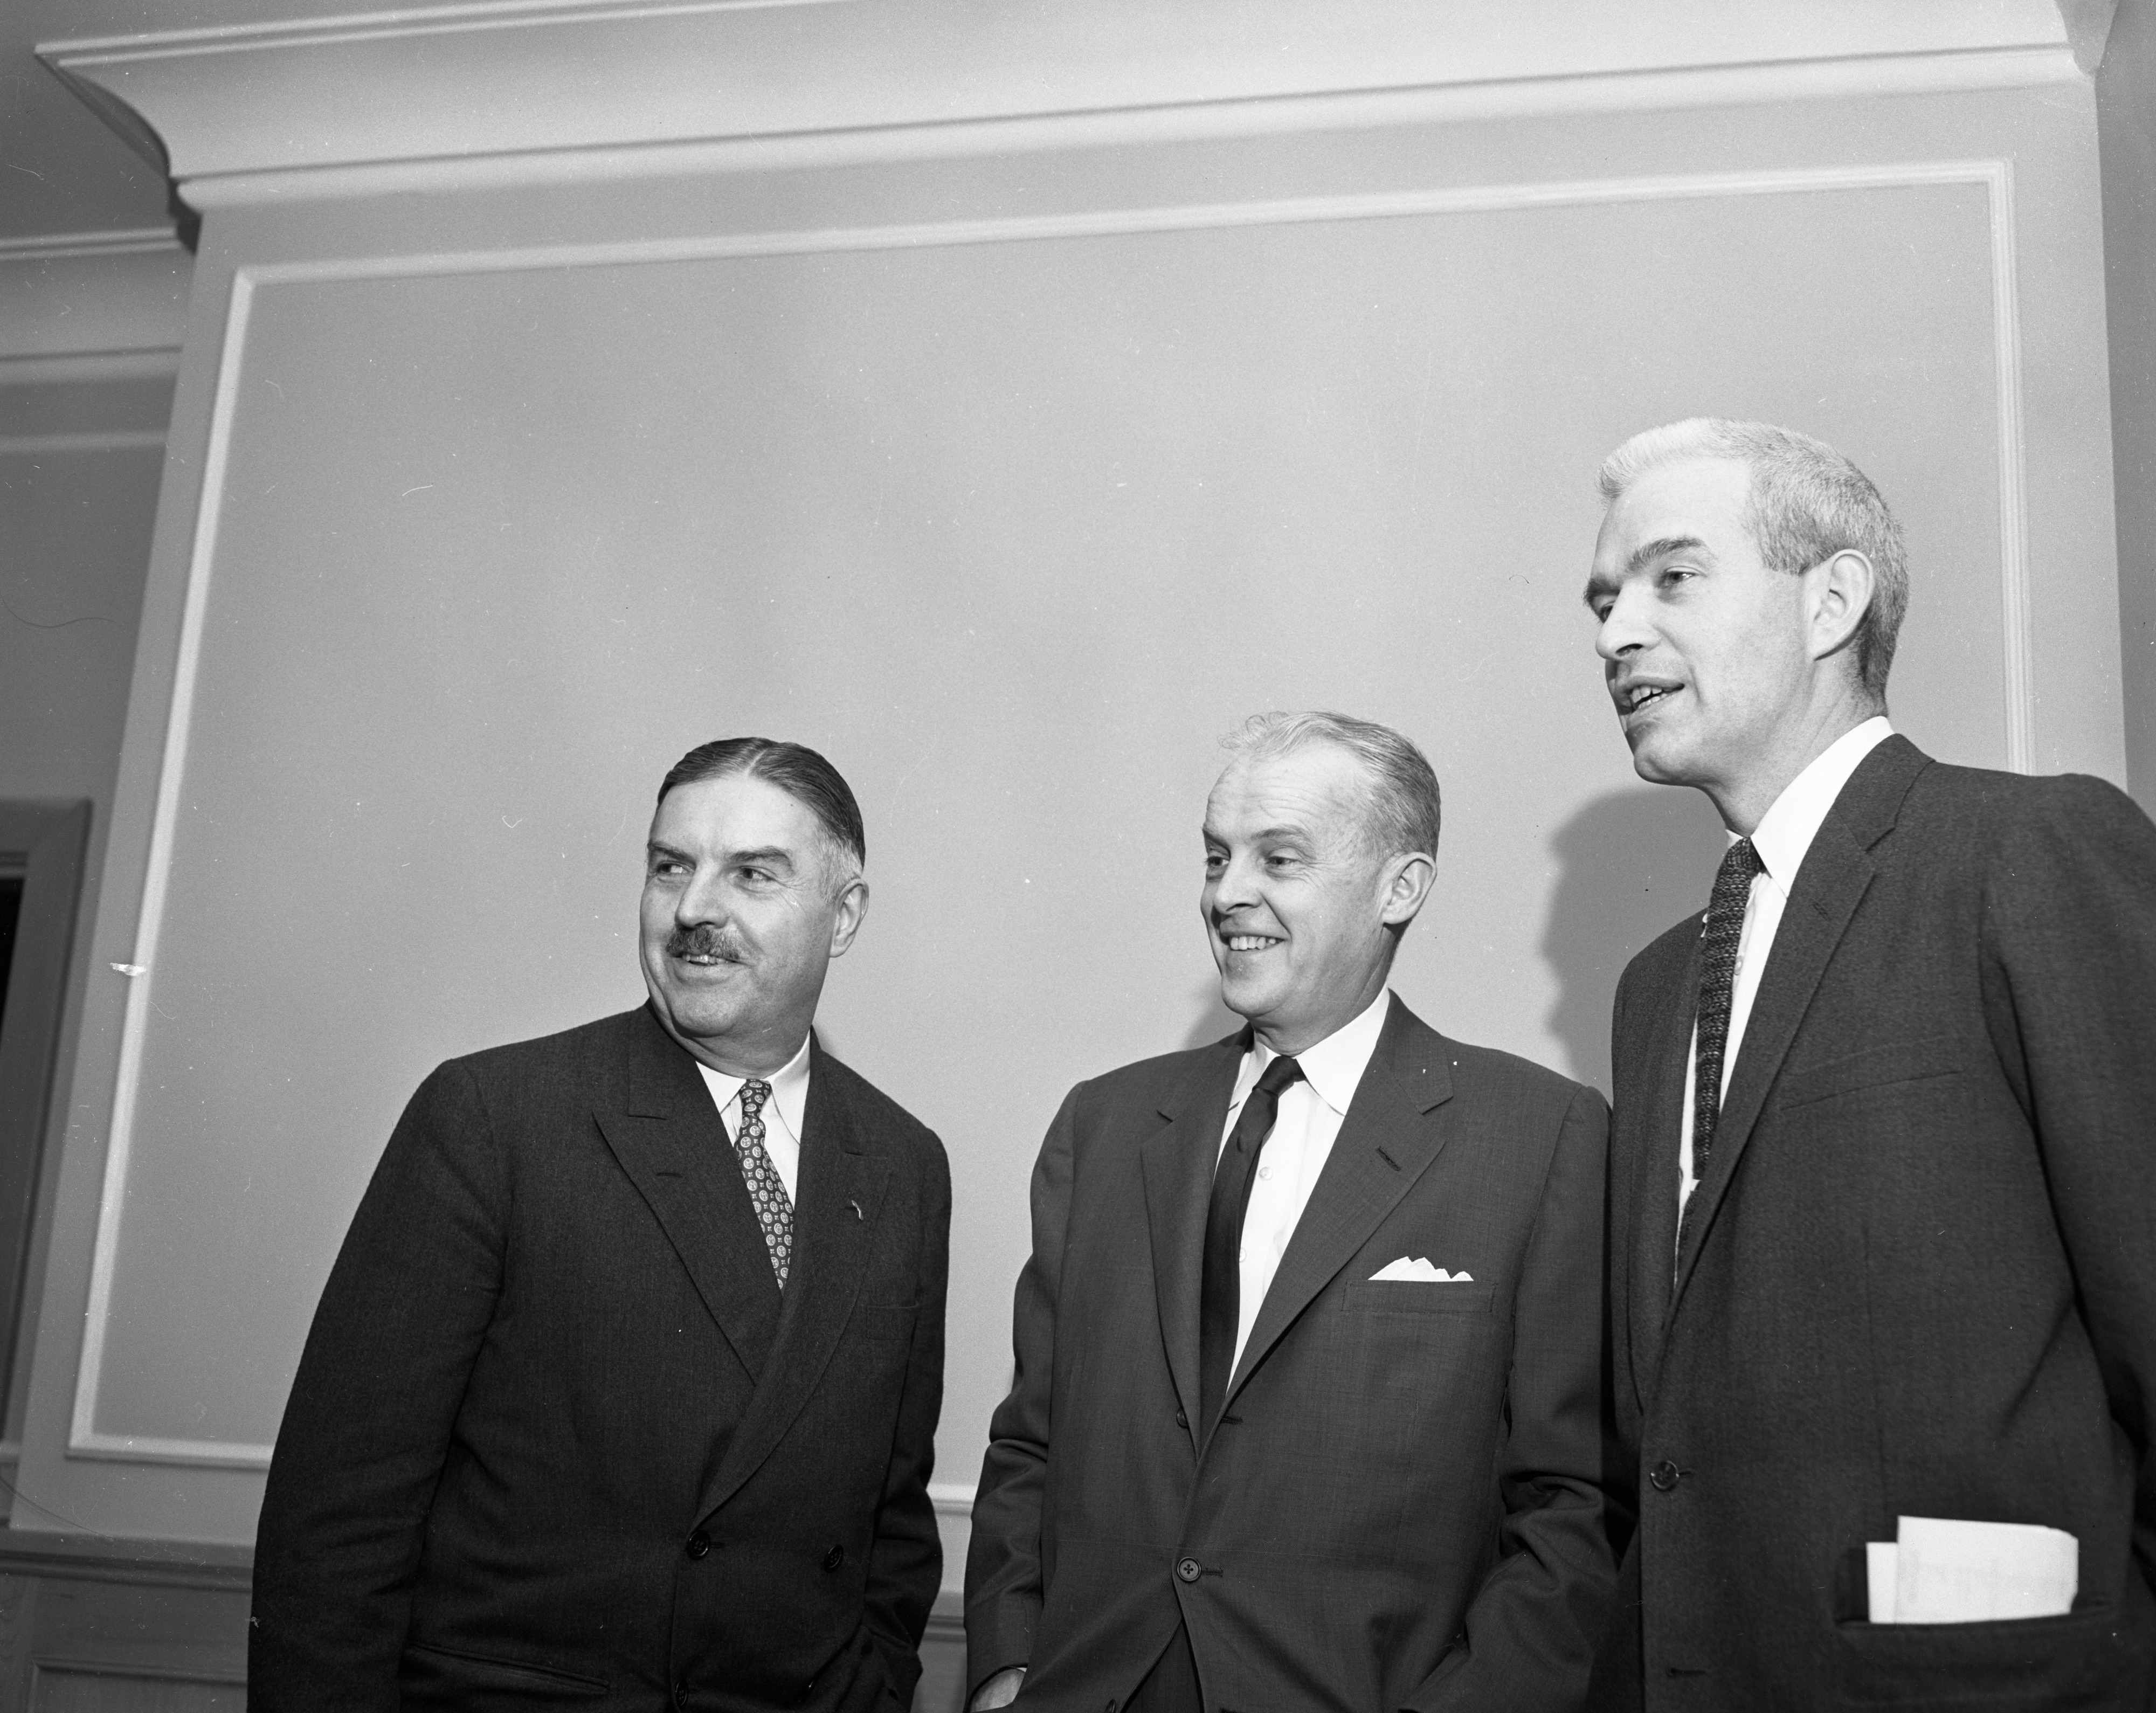 Democrats Paul Butler, Neil Staebler and Thomas Quimby at a three-day session of the National Advisory Committee on Political Organization, December 1956 image